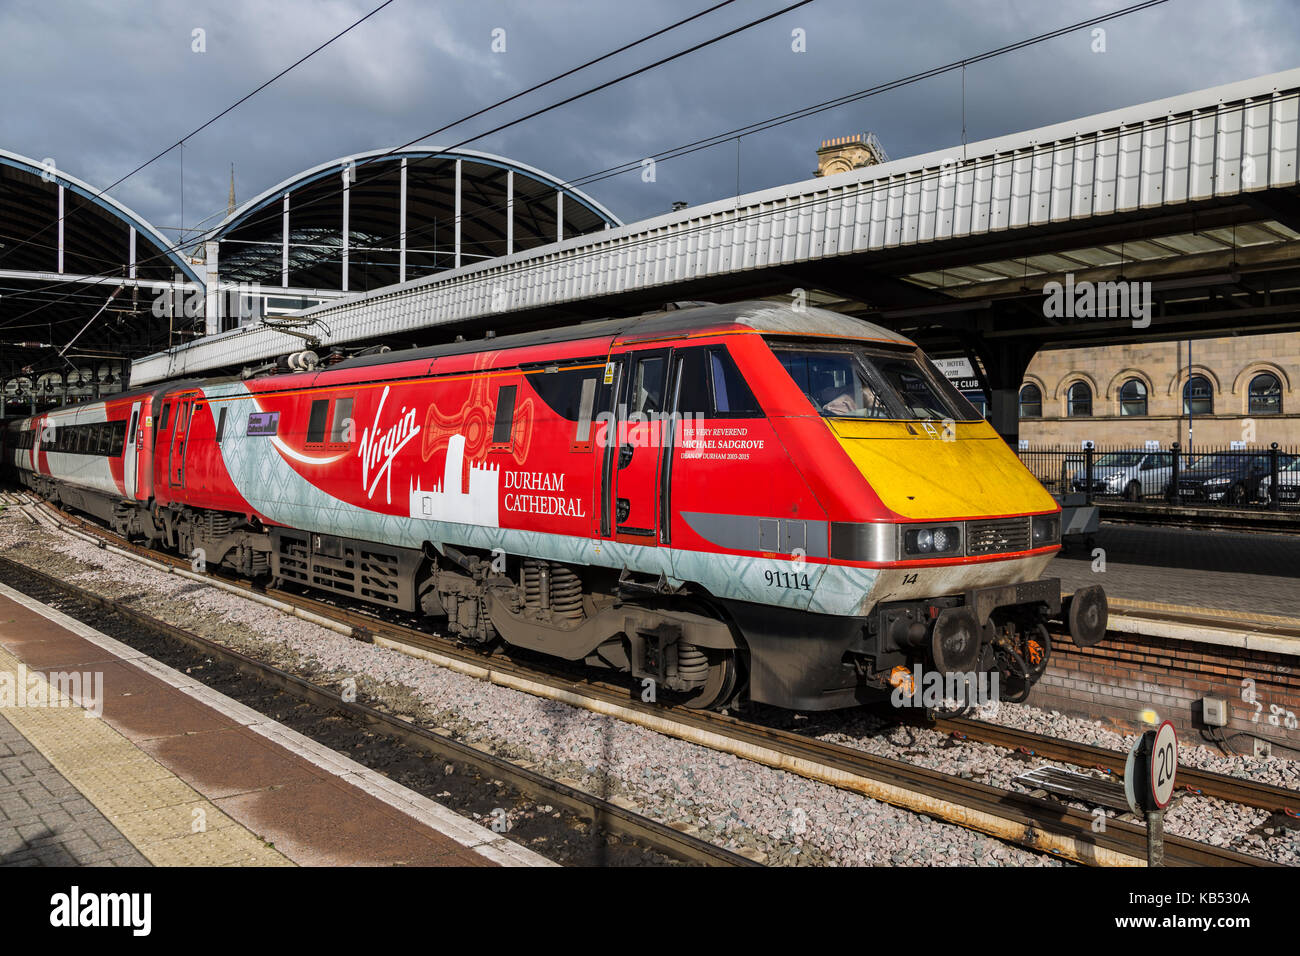 Class 91 Electric Locomotive About to Depart Newcastle Central Station for Scotland - Stock Image